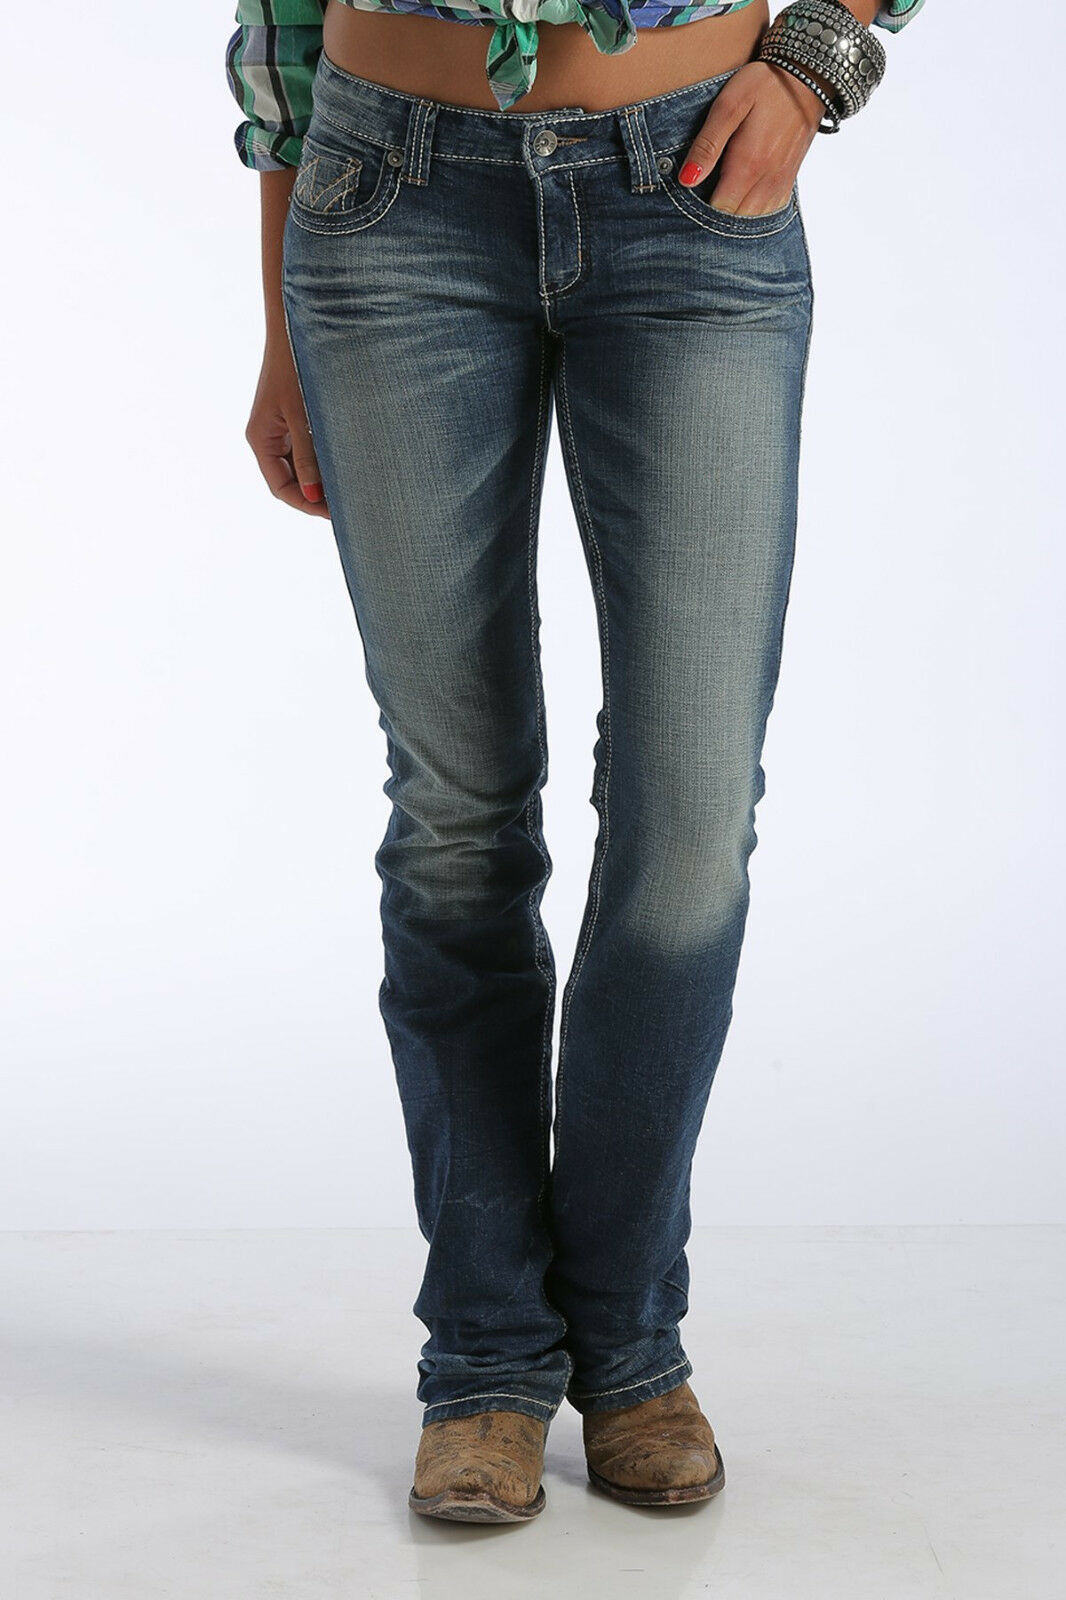 Women's Cruel GIrl Abby Style Jeans Free Shipping CB43054071